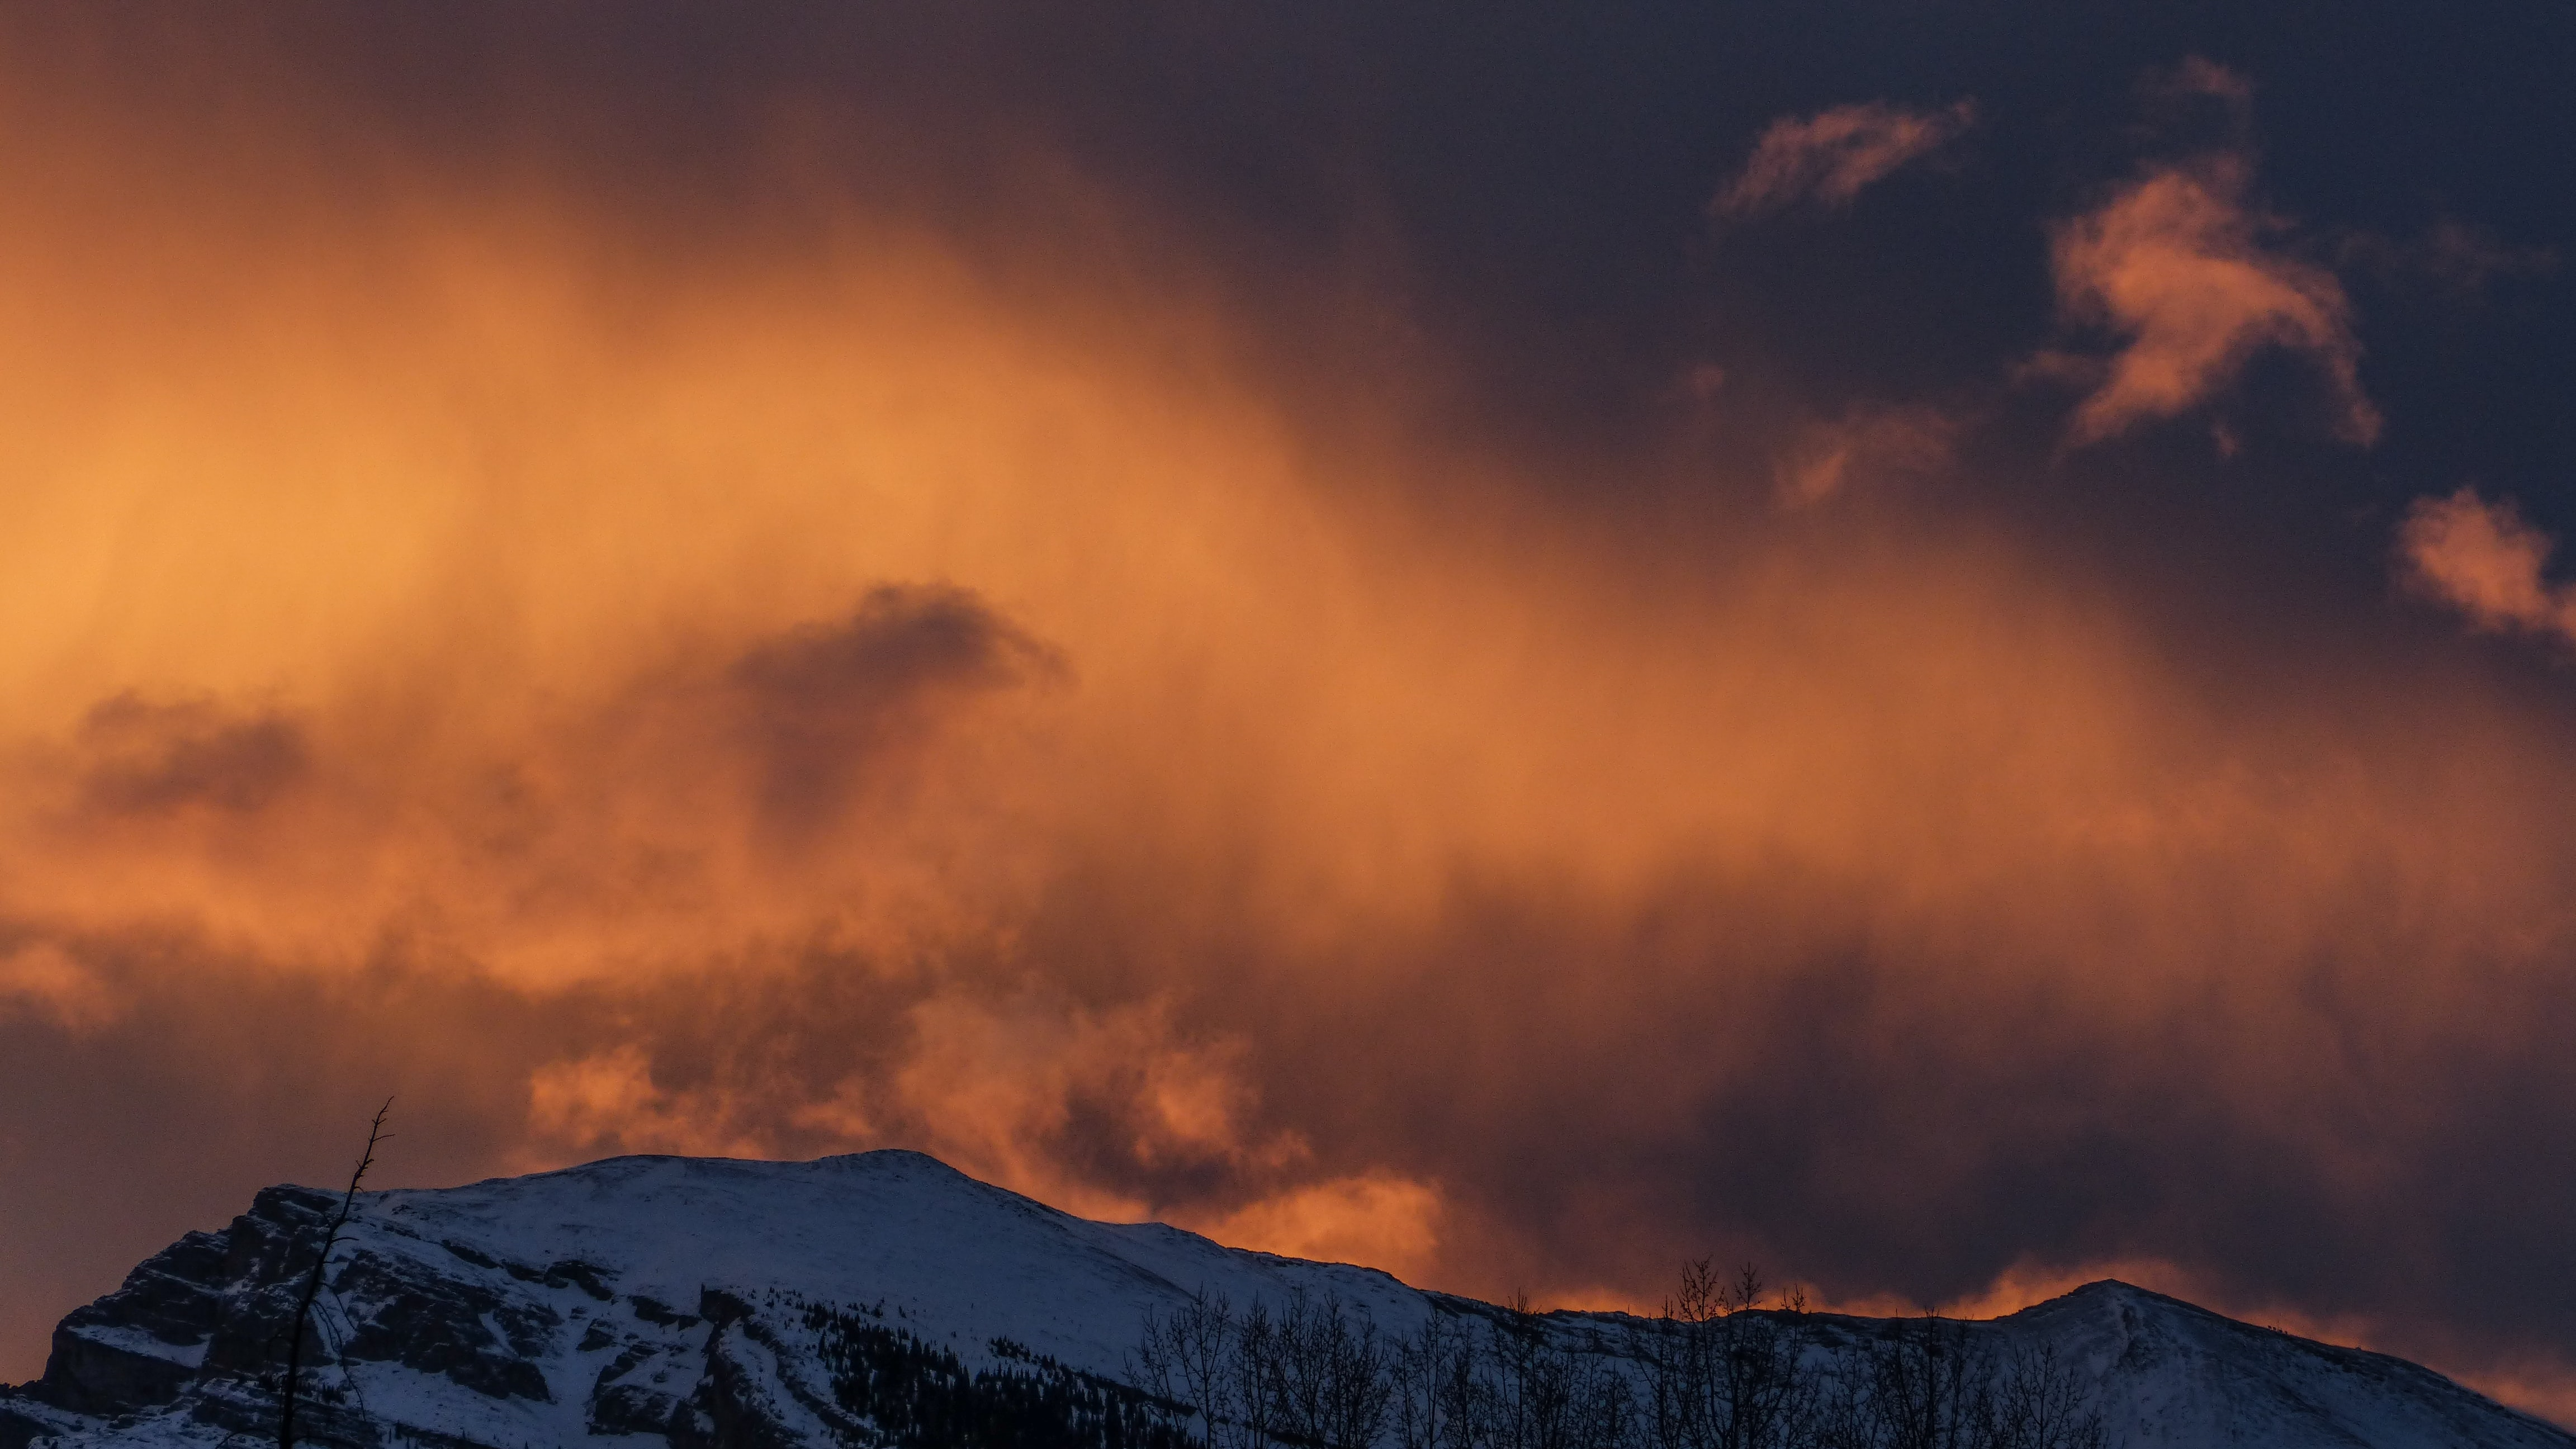 snowy mountain under cloudy sky during sunset